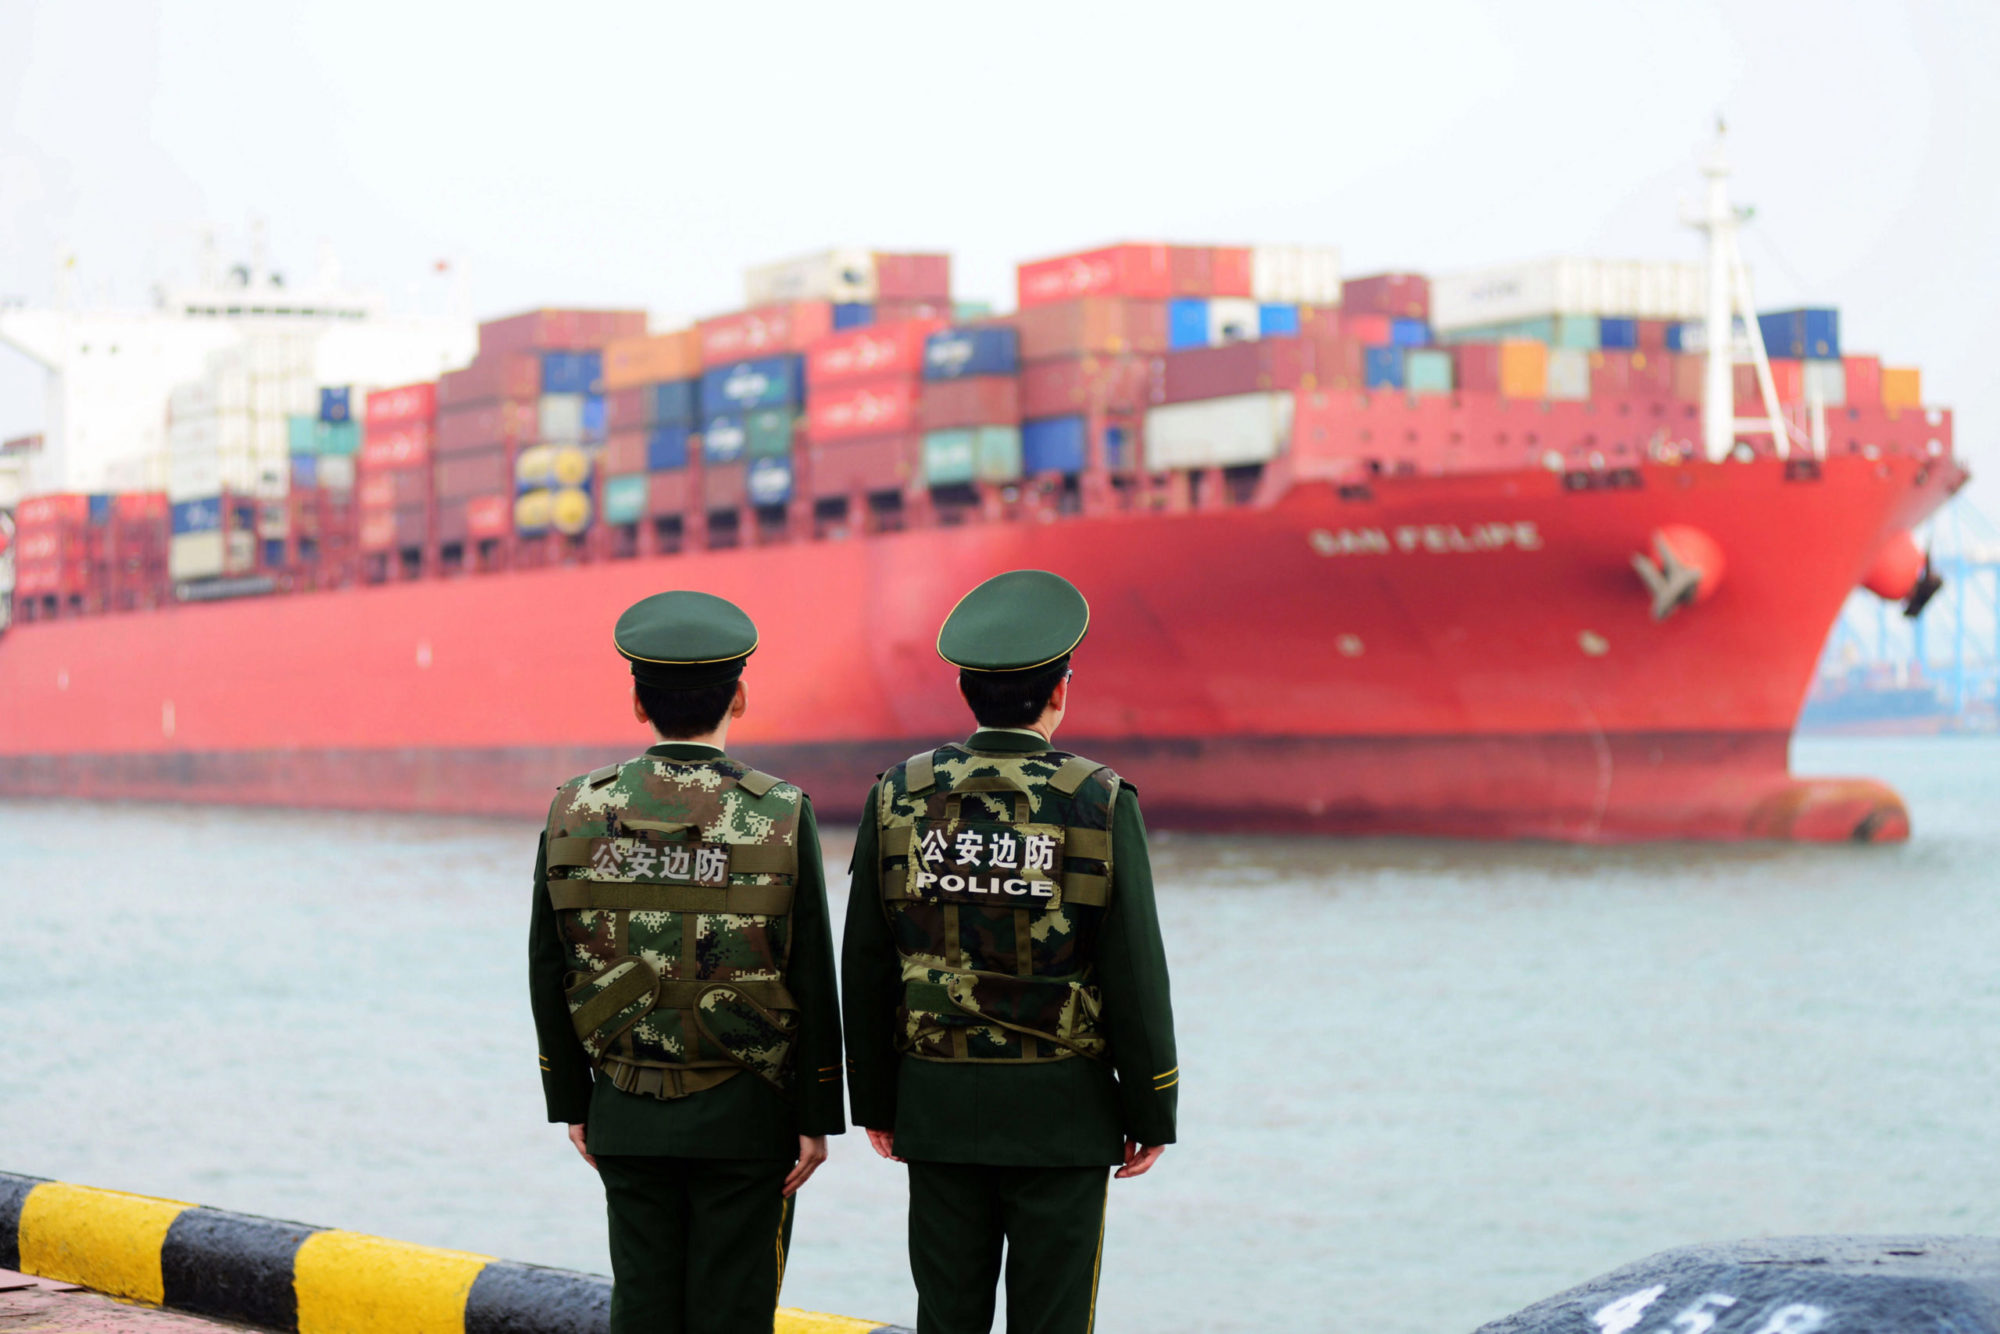 Two Chinese police officers watch a ship carrying freight containers in the distance; maritime silk road.